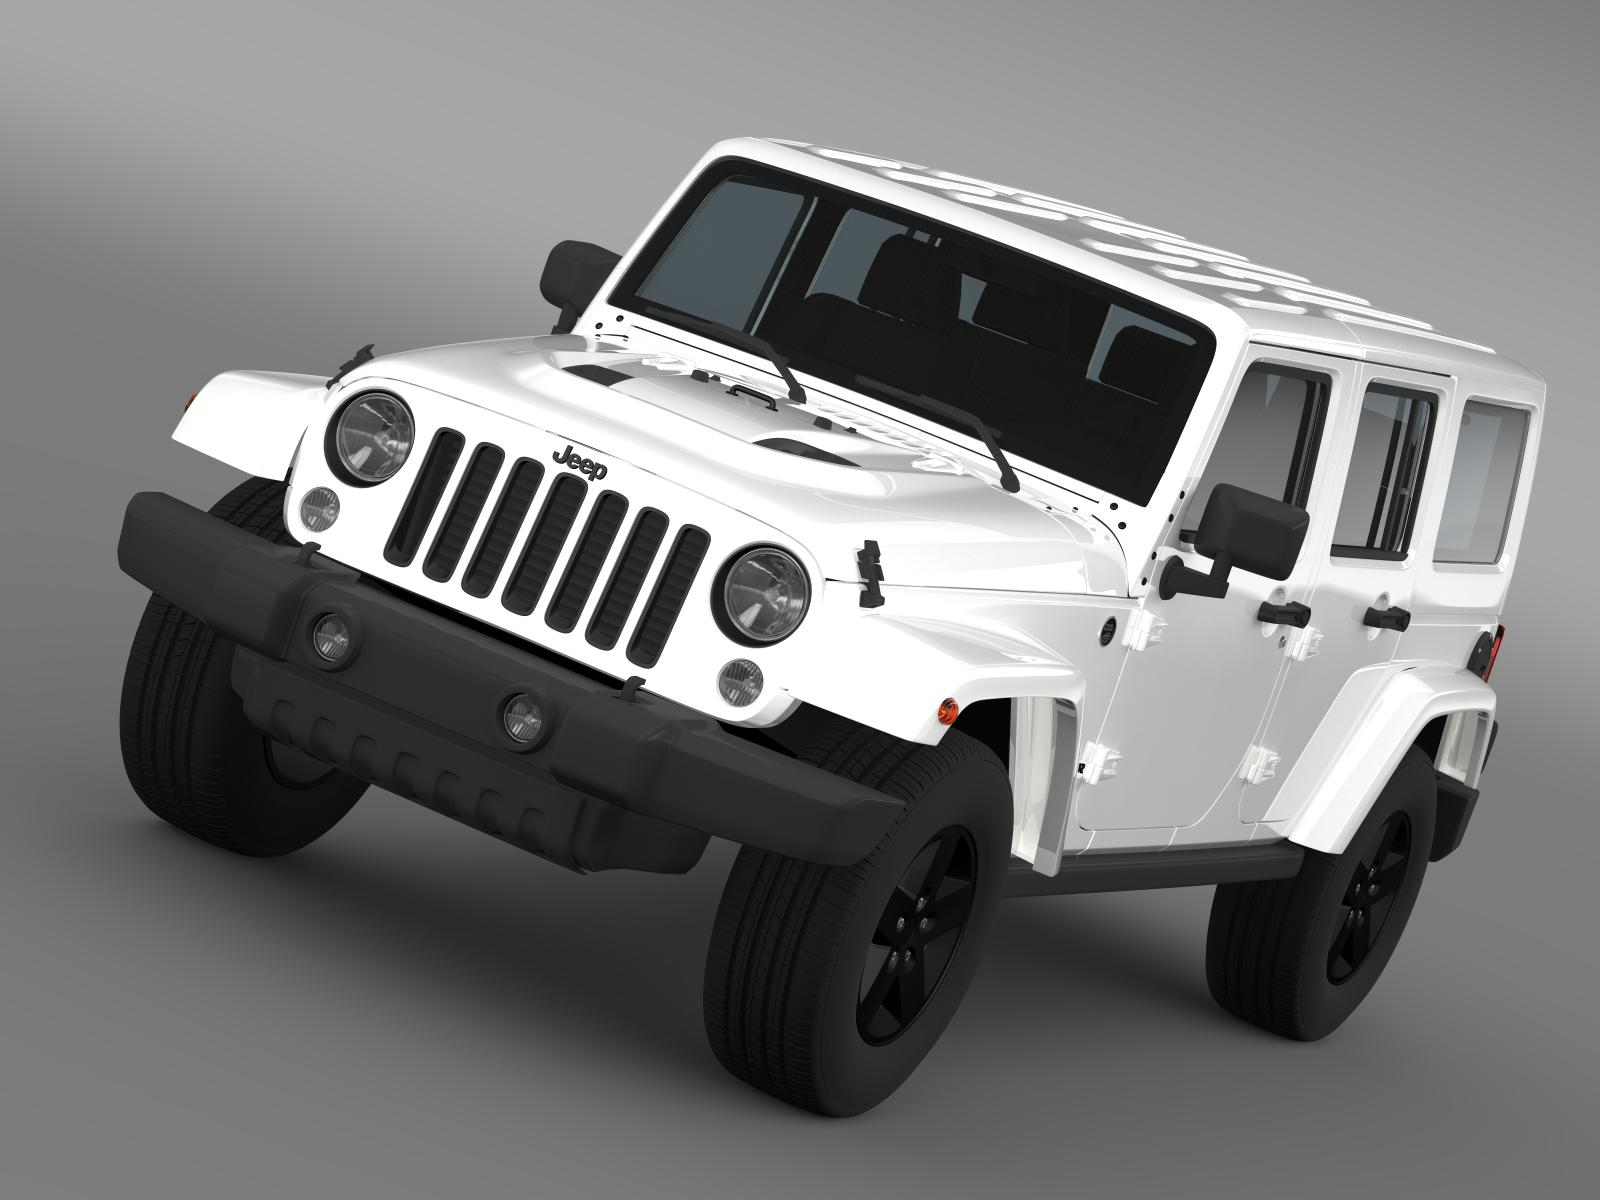 jeep wrangler 2015 white. jeep wrangler unlimited x 2015 12538kb jpg by creator_3d white